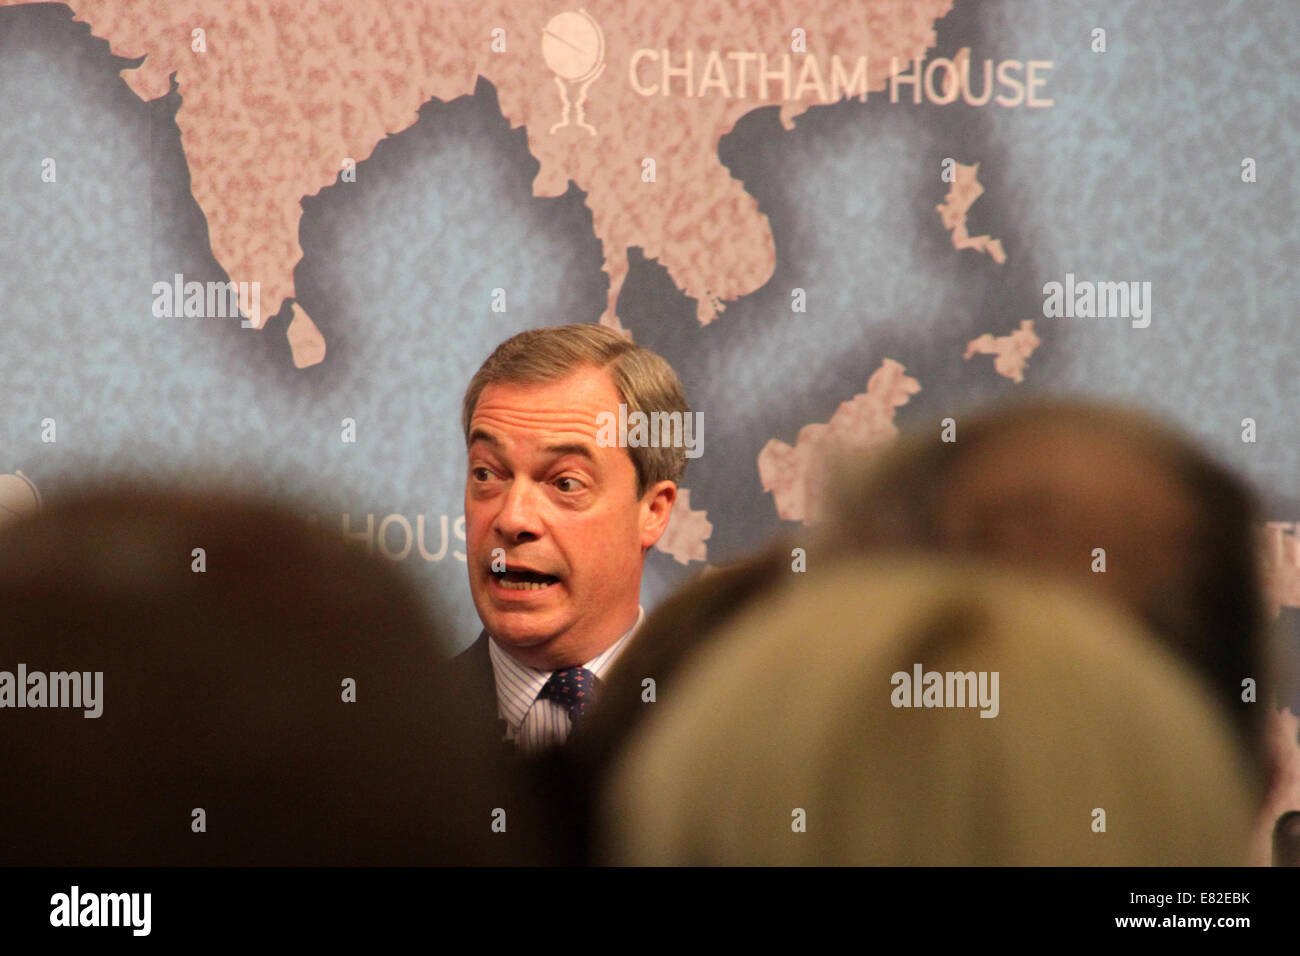 Nigel Farage, leader of the UK Independence Party, speaking at Chatham House in London on Monday 31 March 2014. - Stock Image